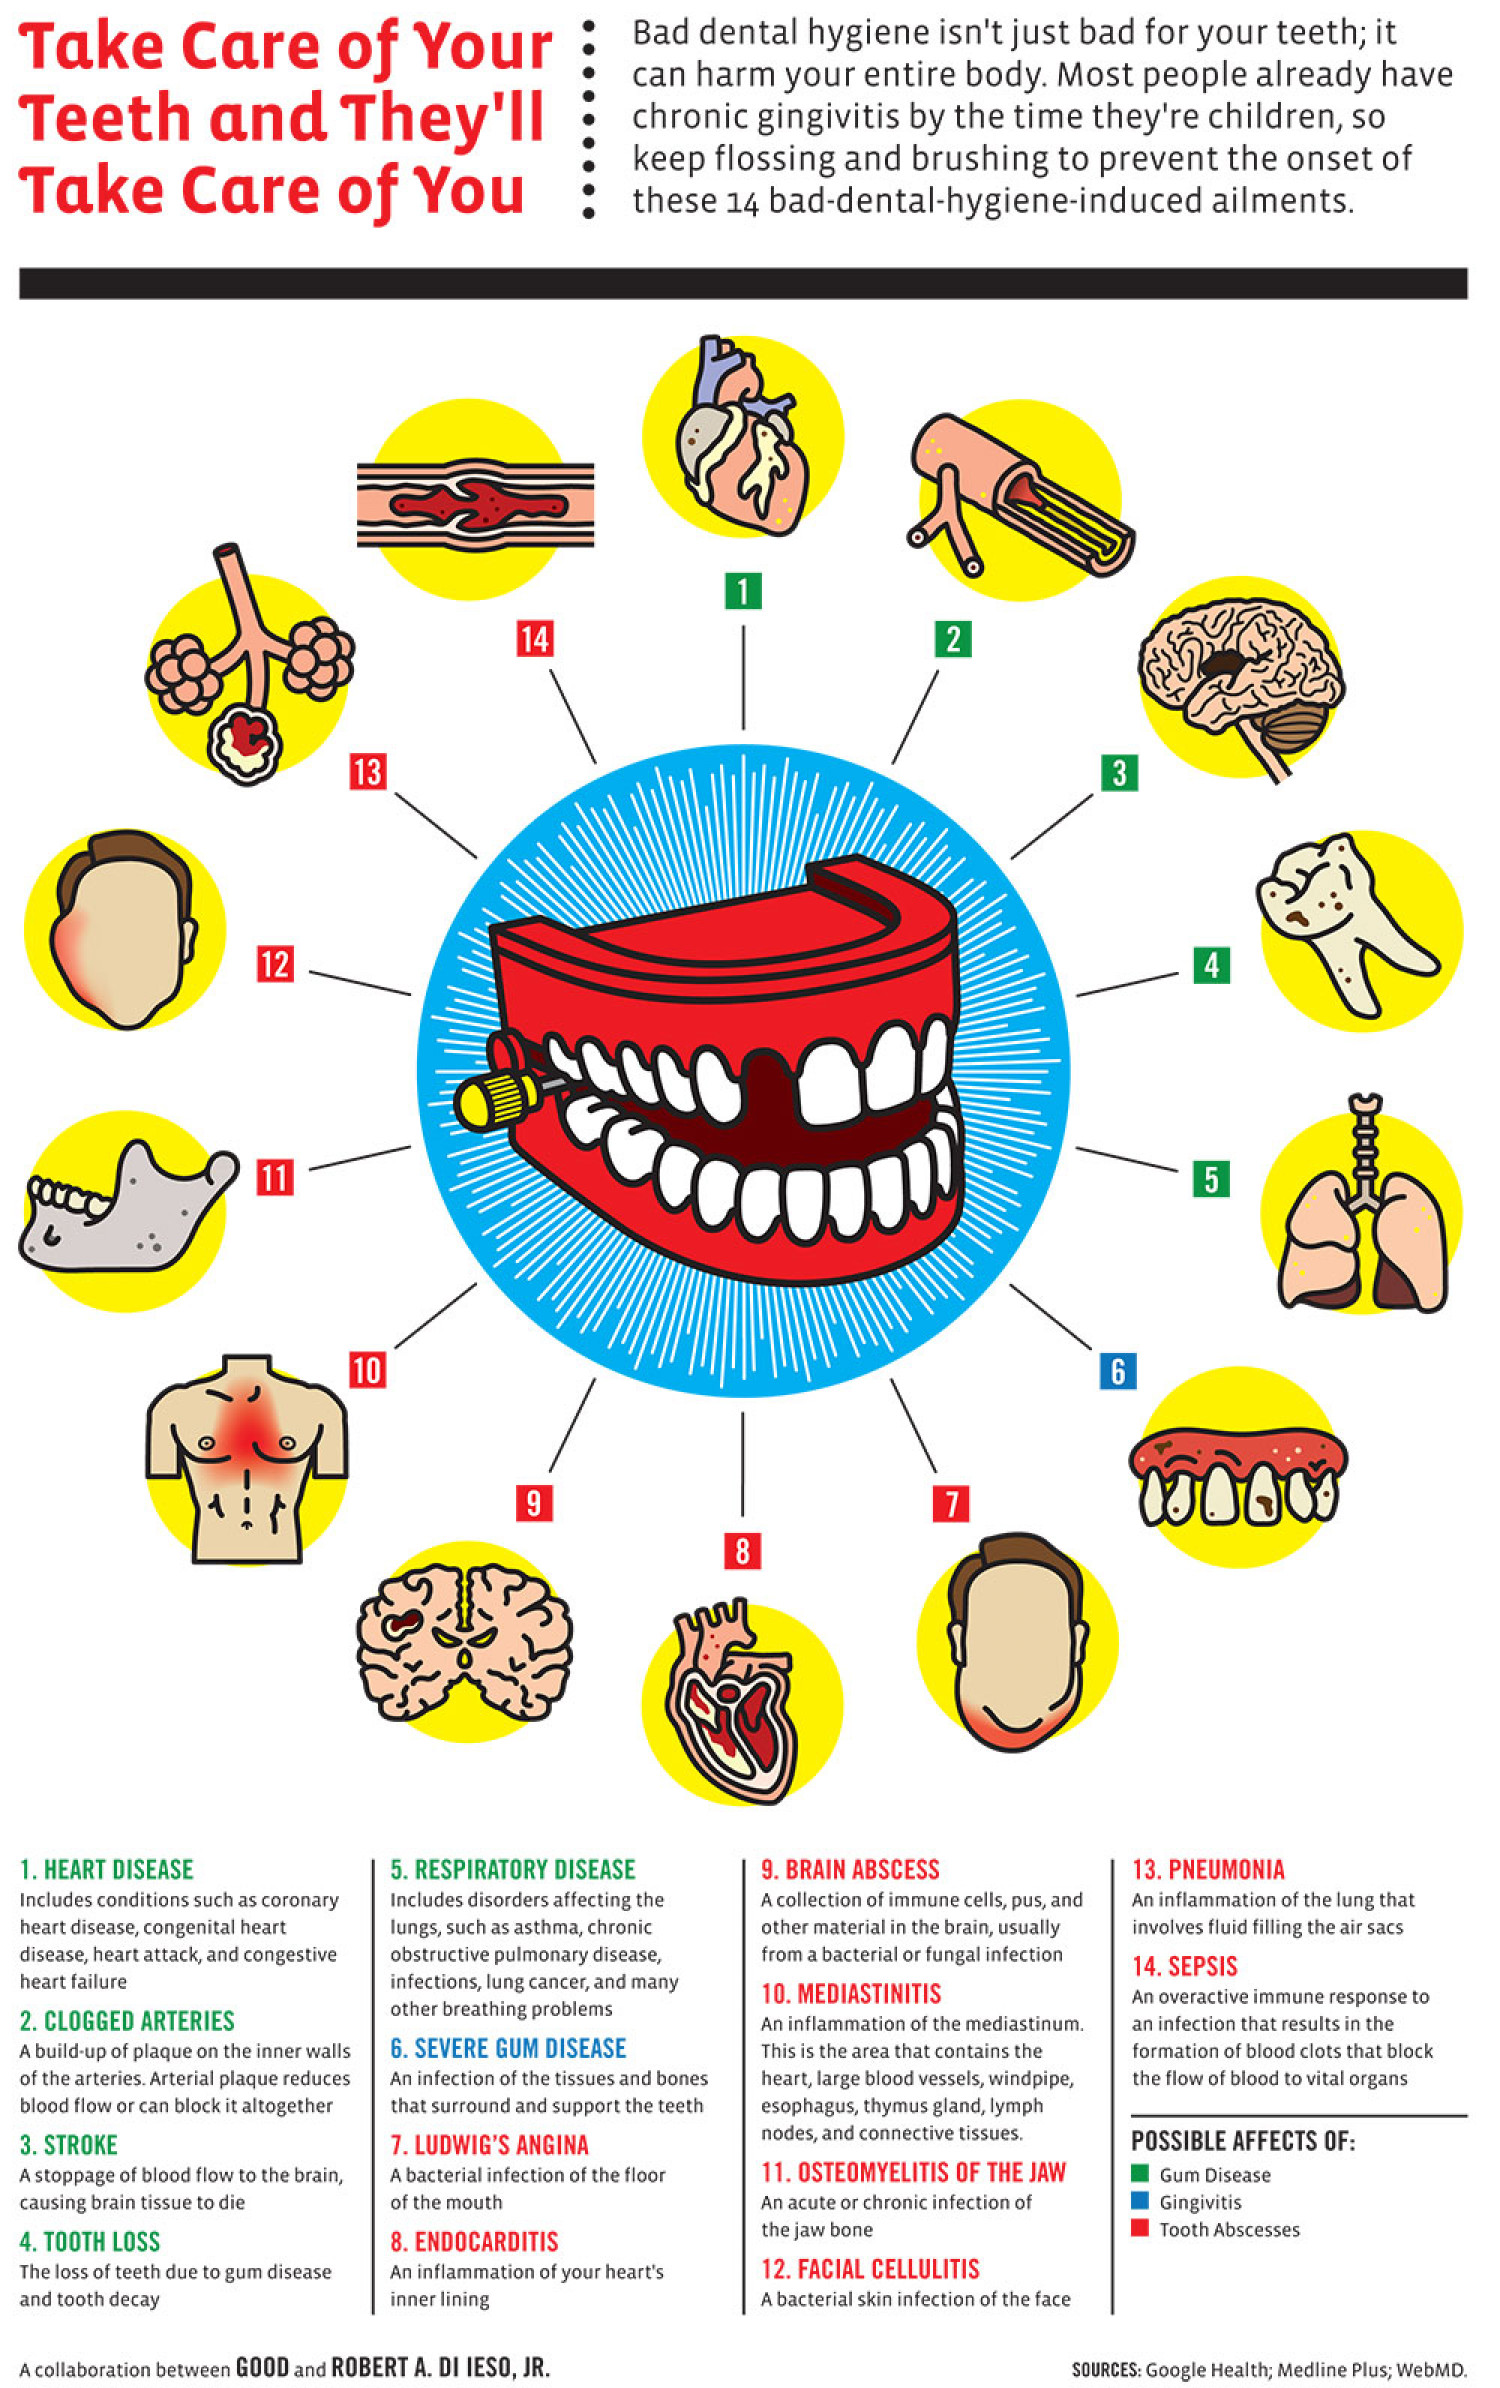 Take Care Of Your Teeth and They'll Take Care of you Infographic